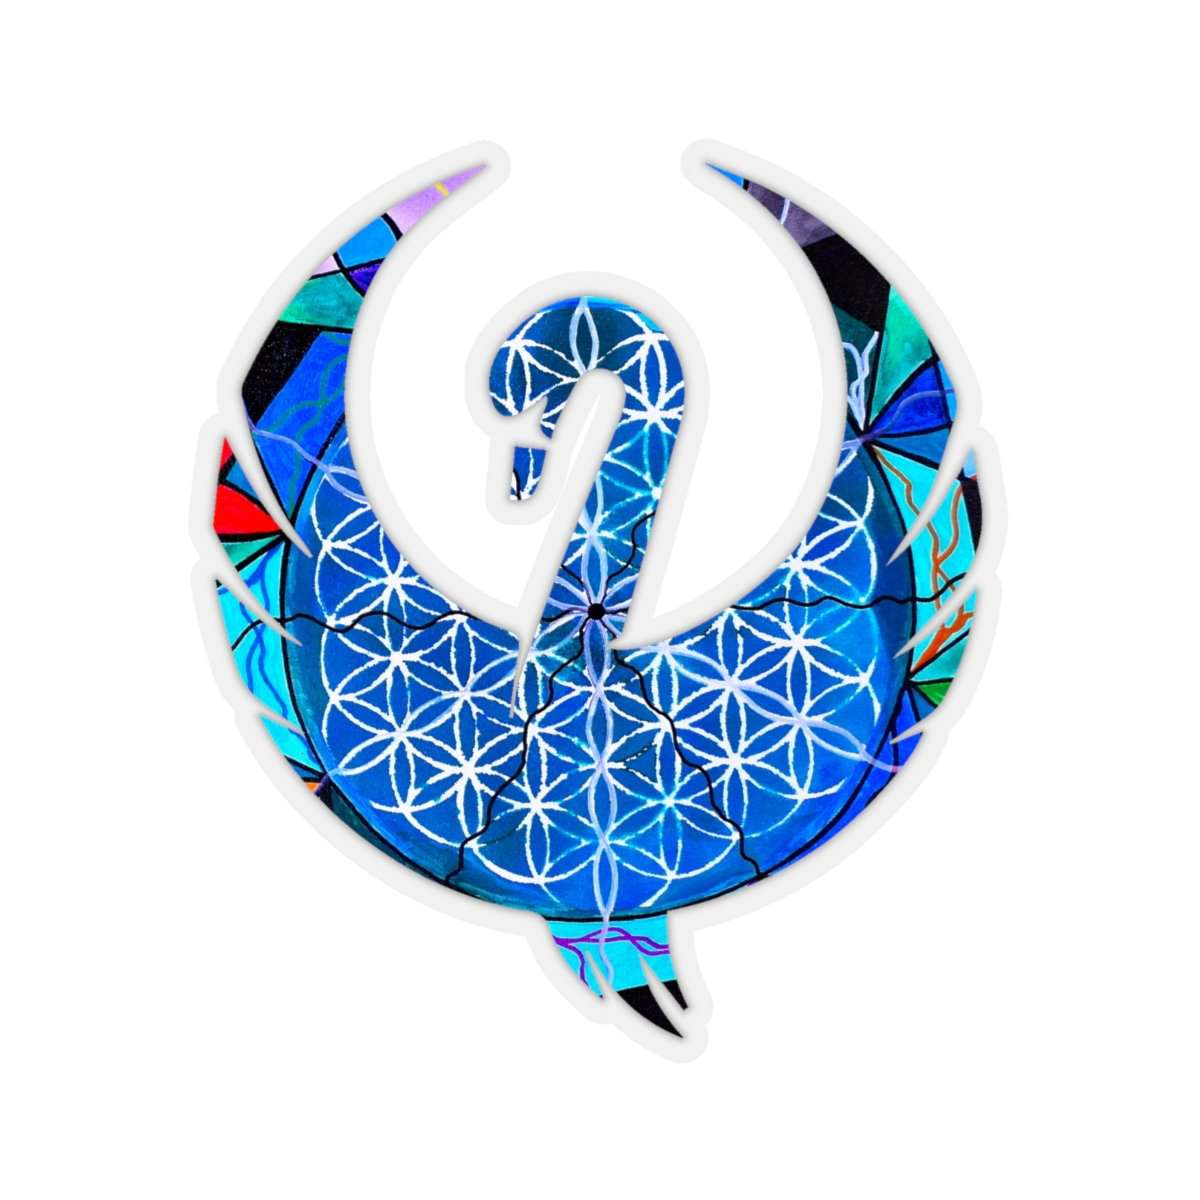 The Flower of Life - Swan Stickers